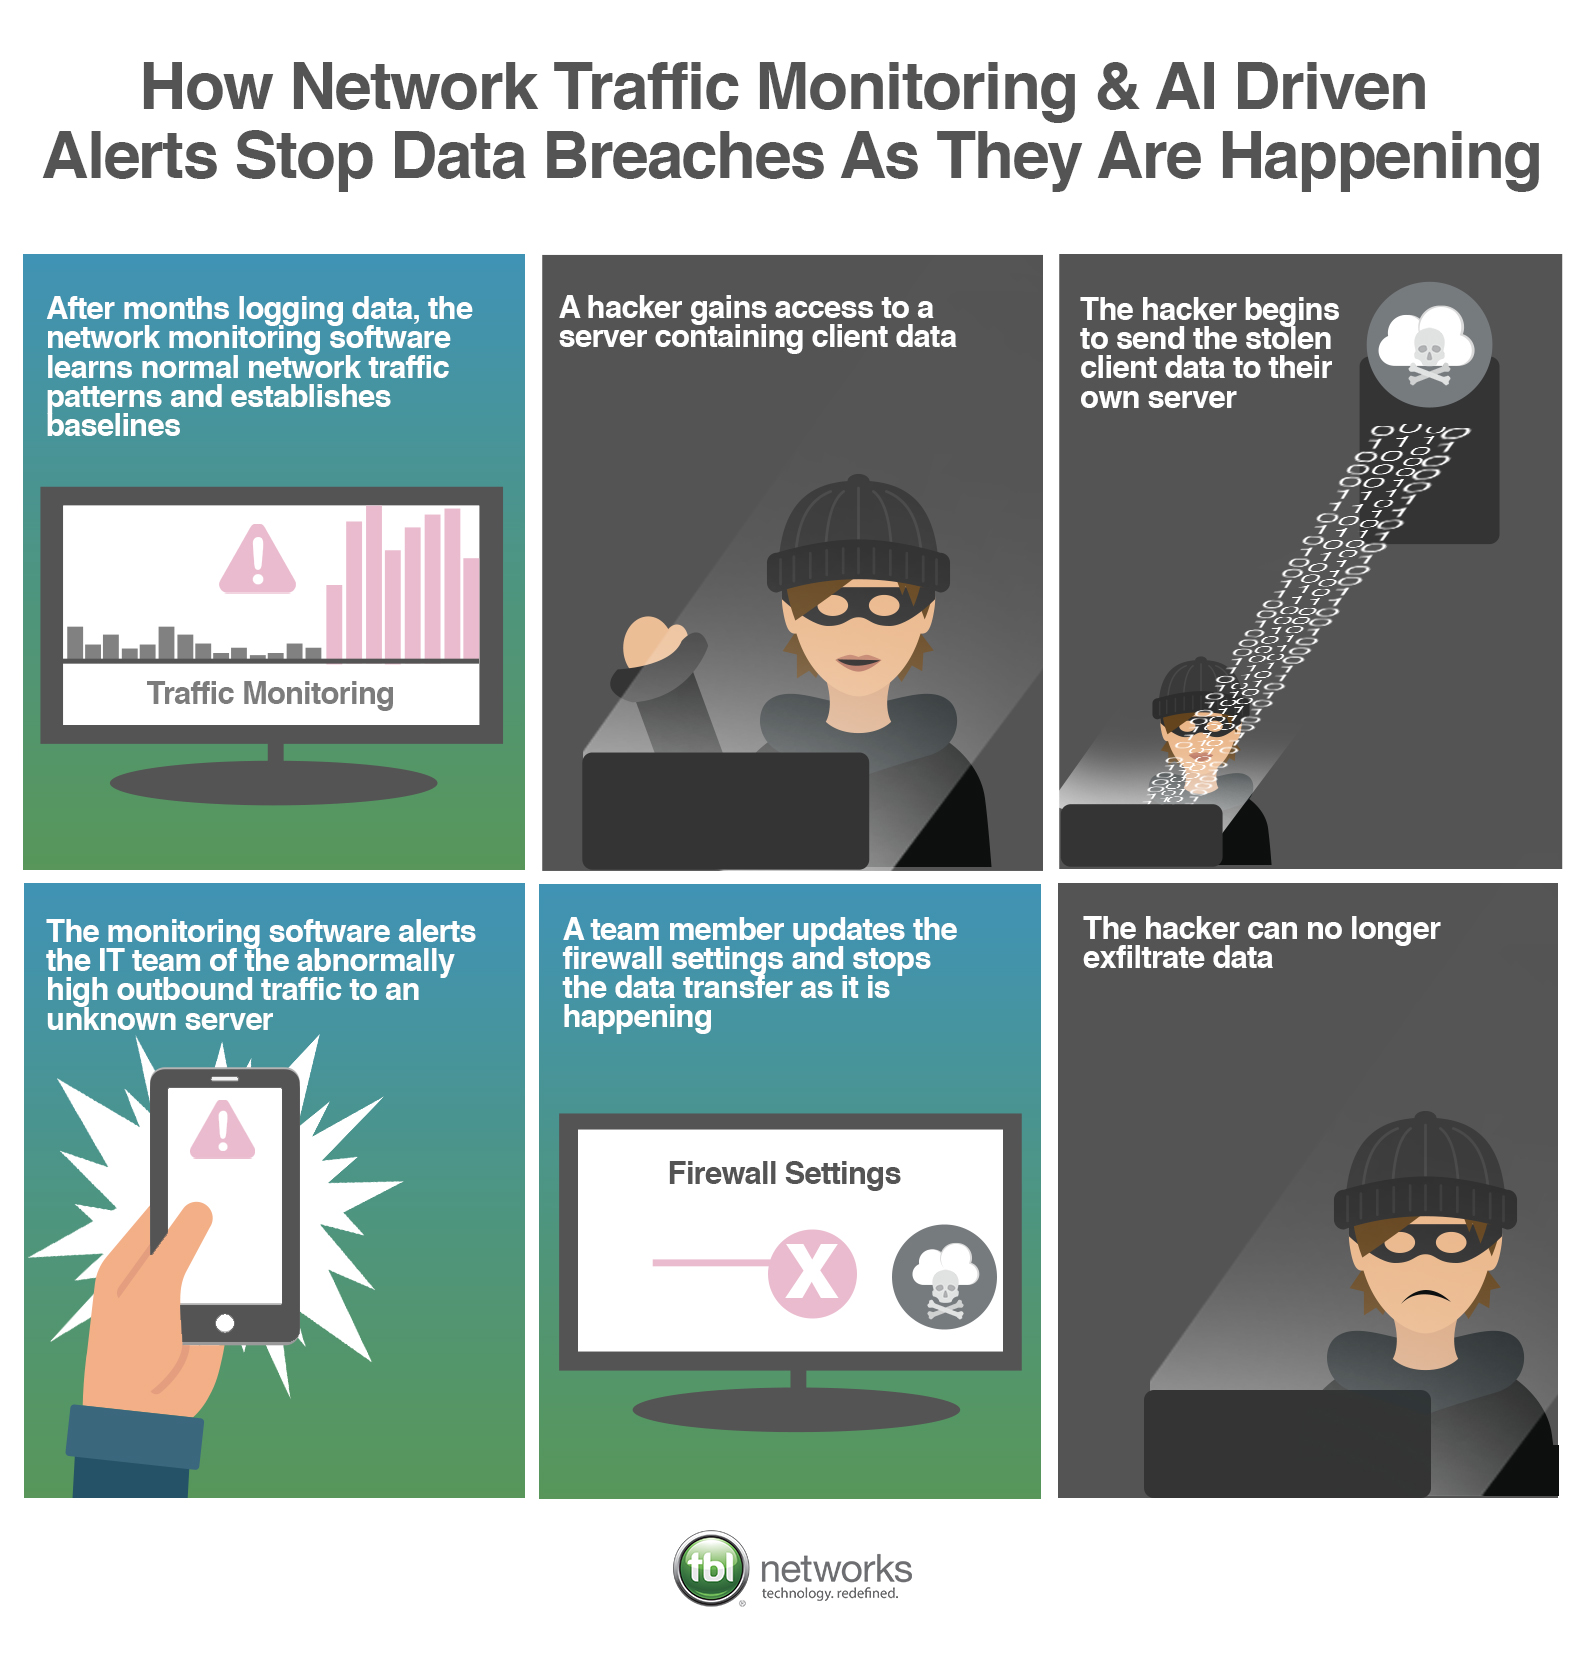 Network-Monitoring-Polocies-for-data-breaches